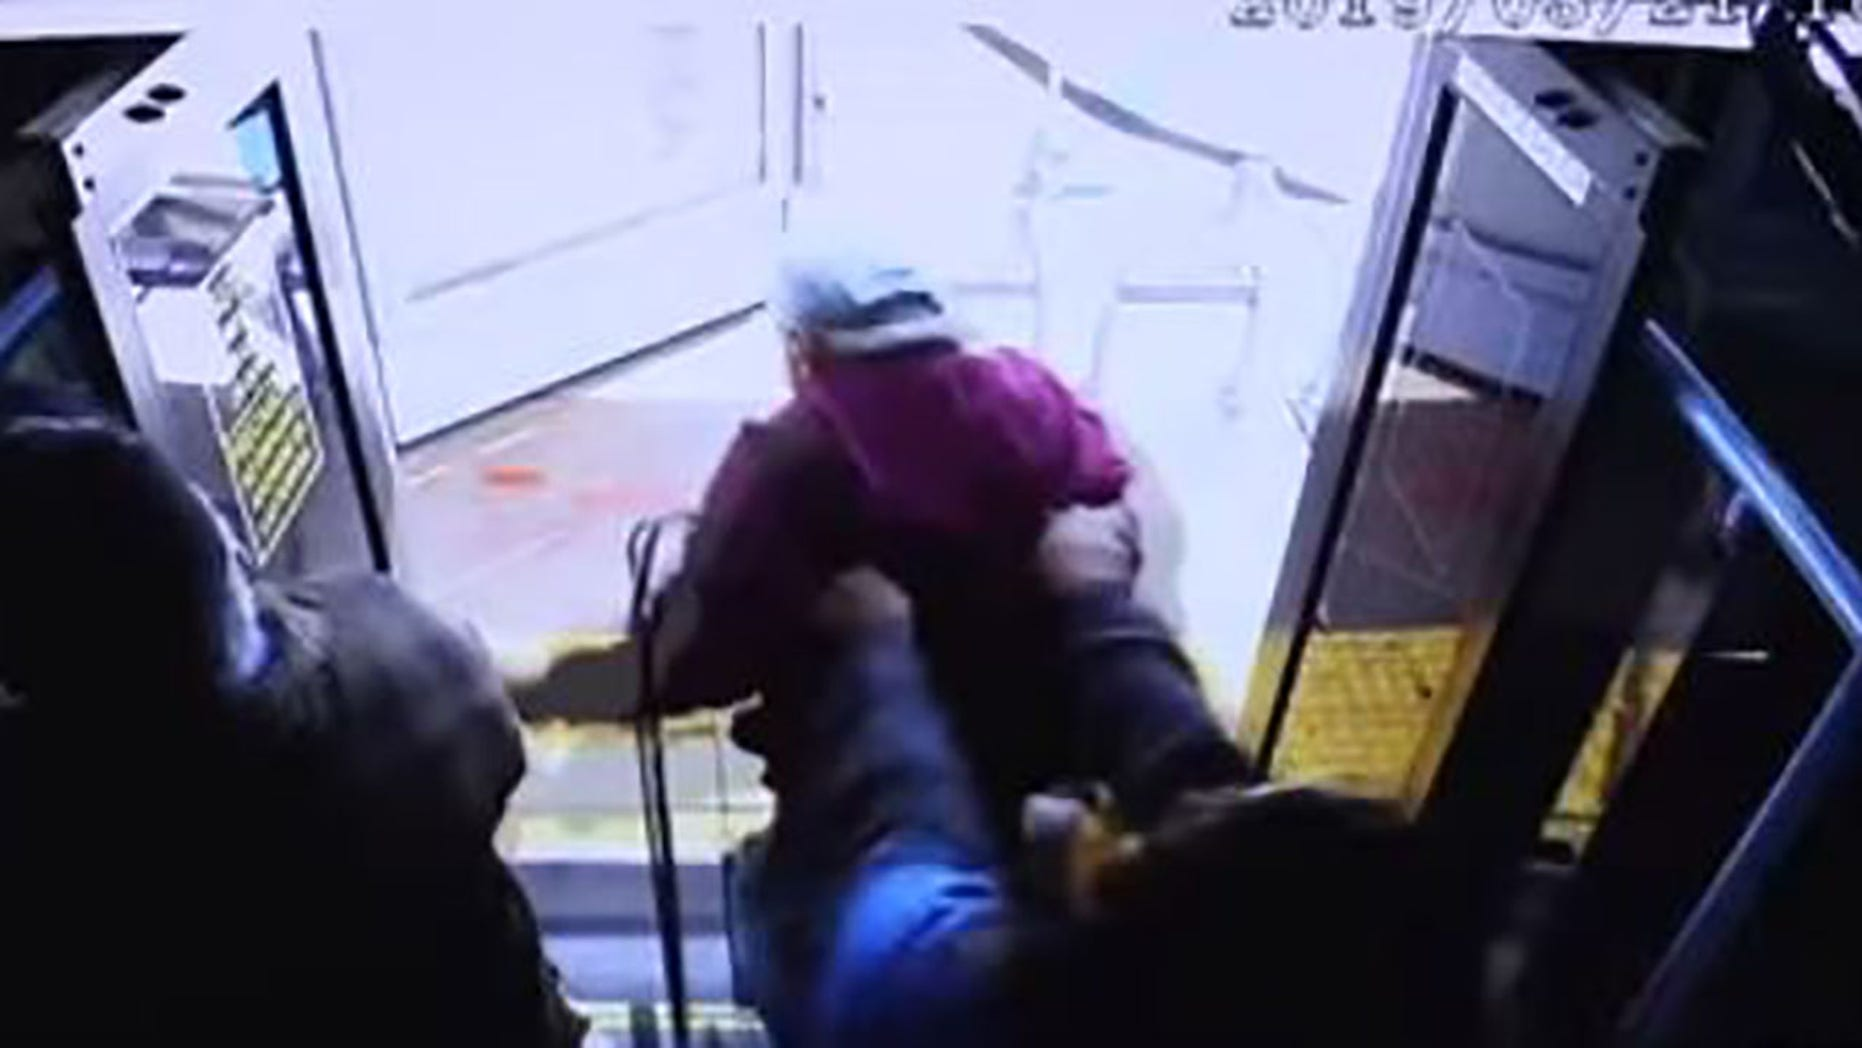 Woman, 25, shove elderly man off bus so hard it killed him